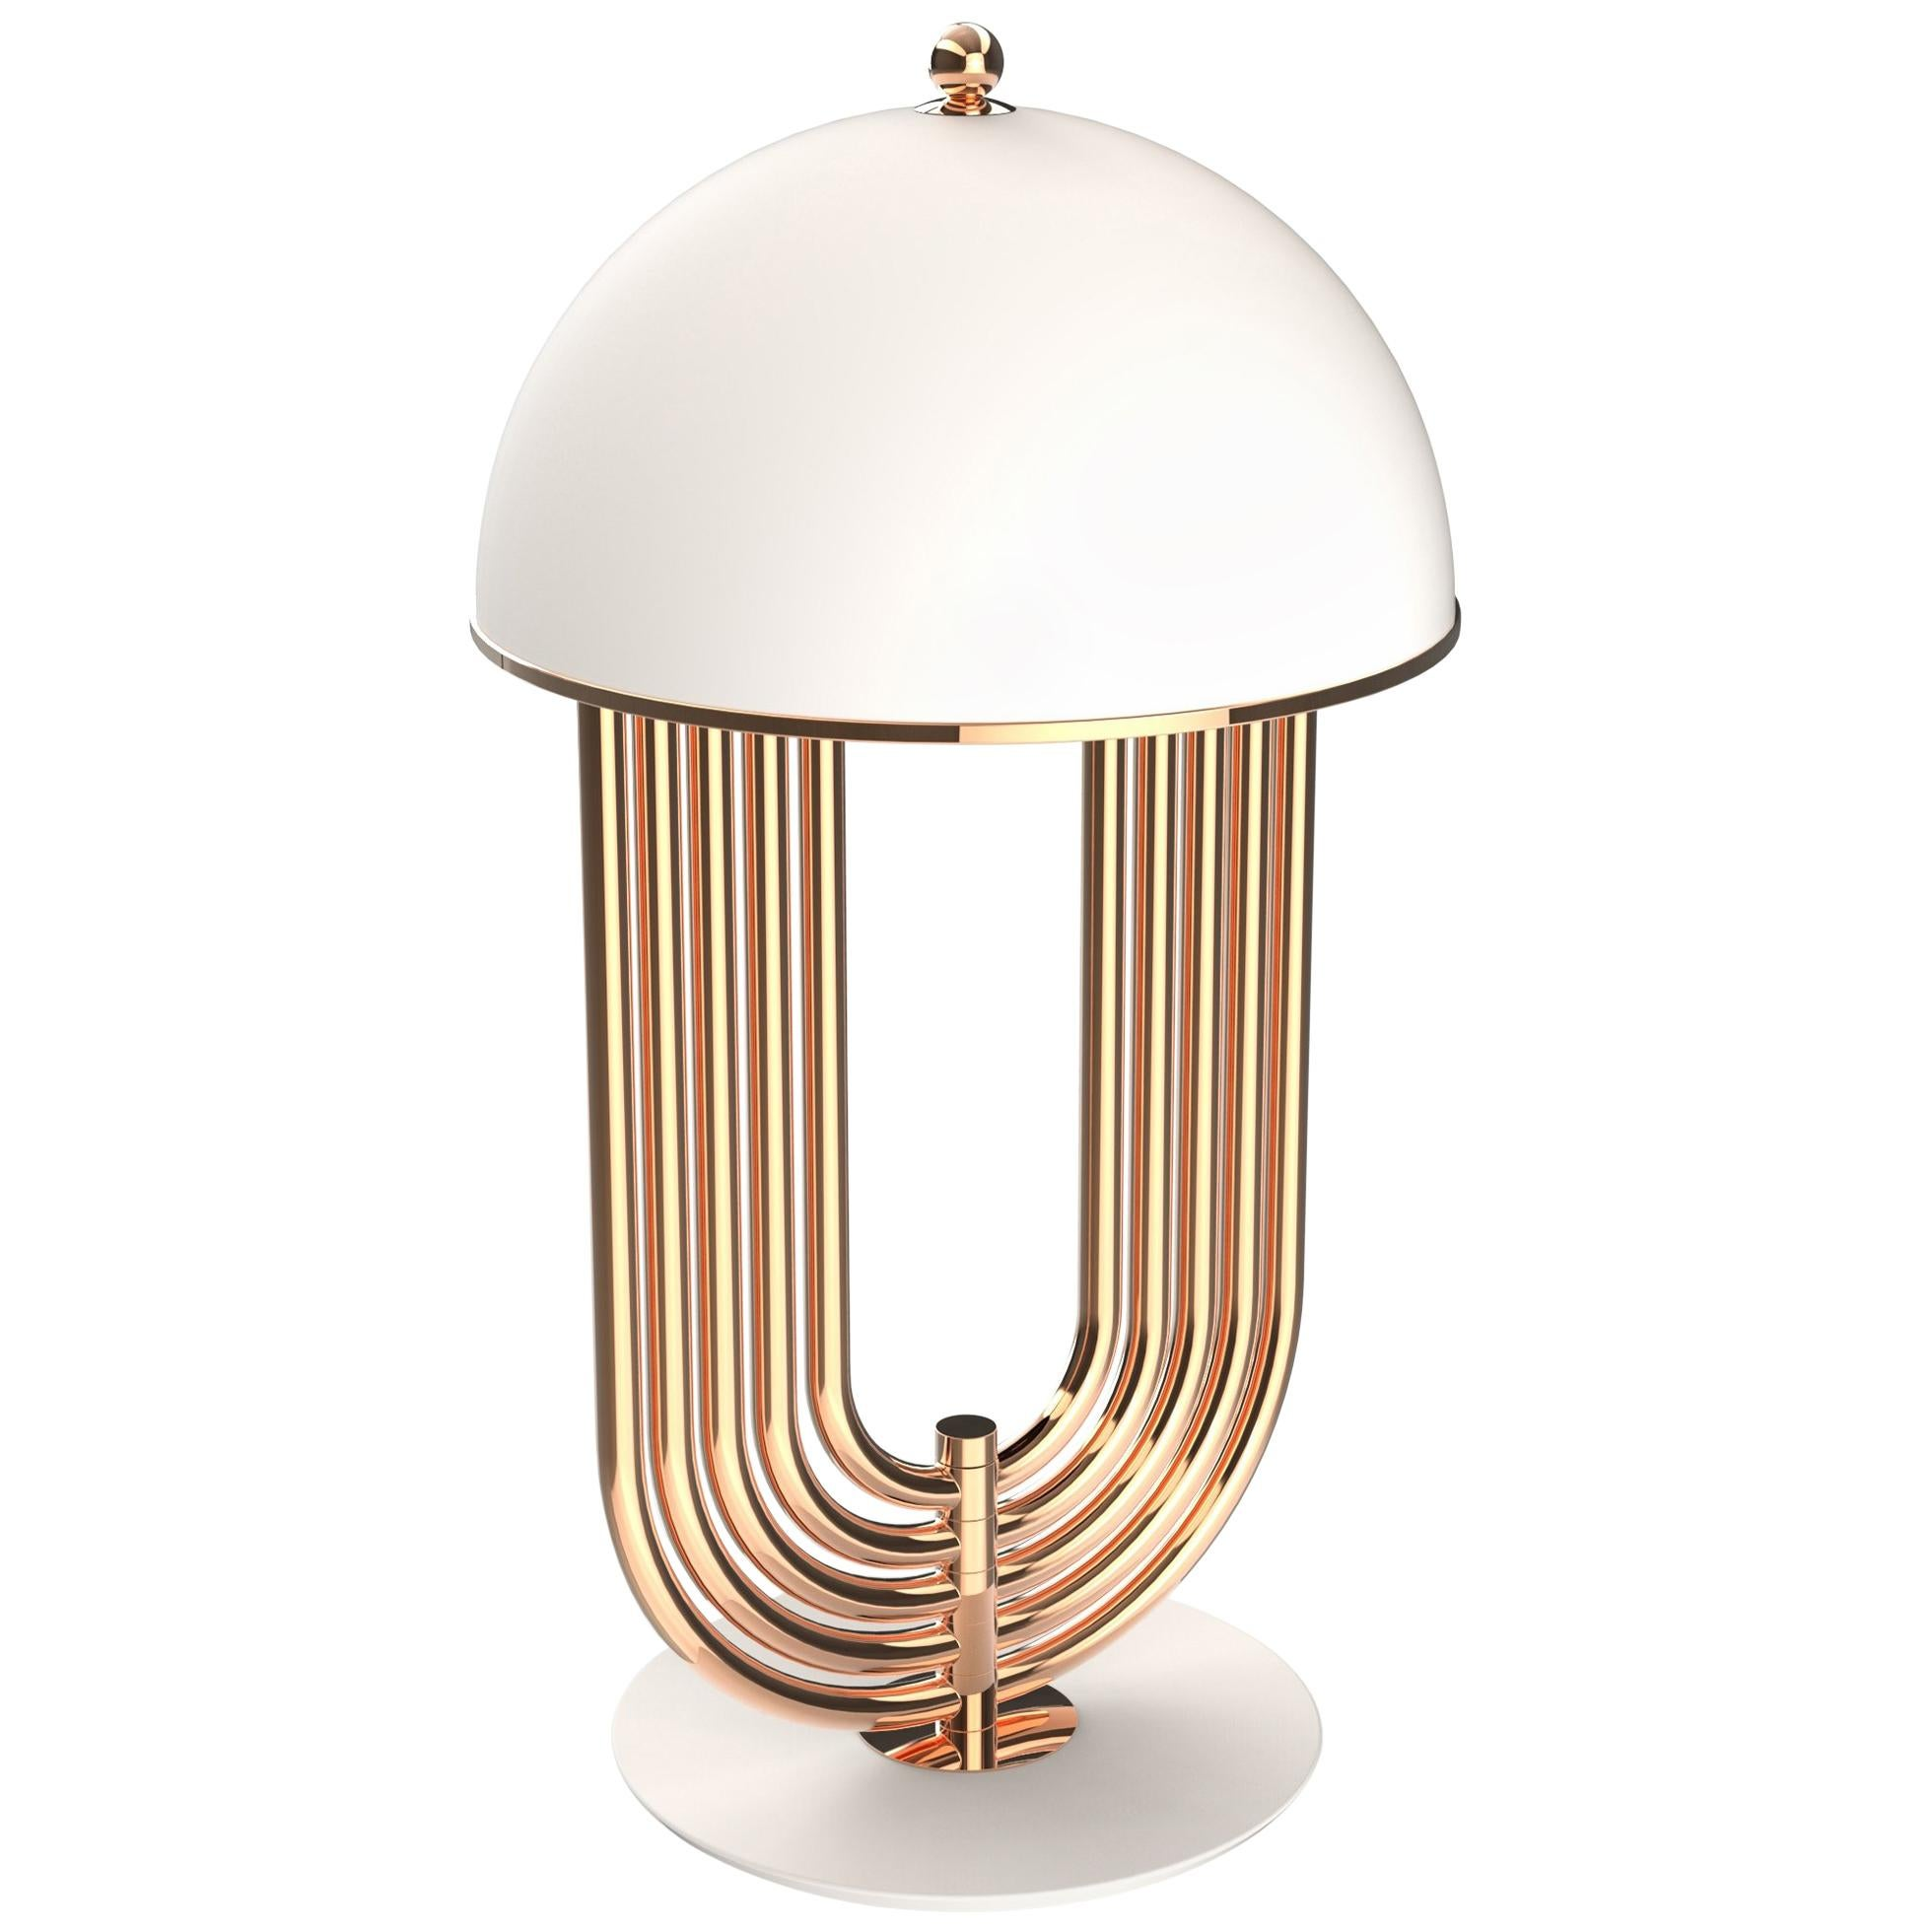 Turner Table Lamp in Brass with White Details